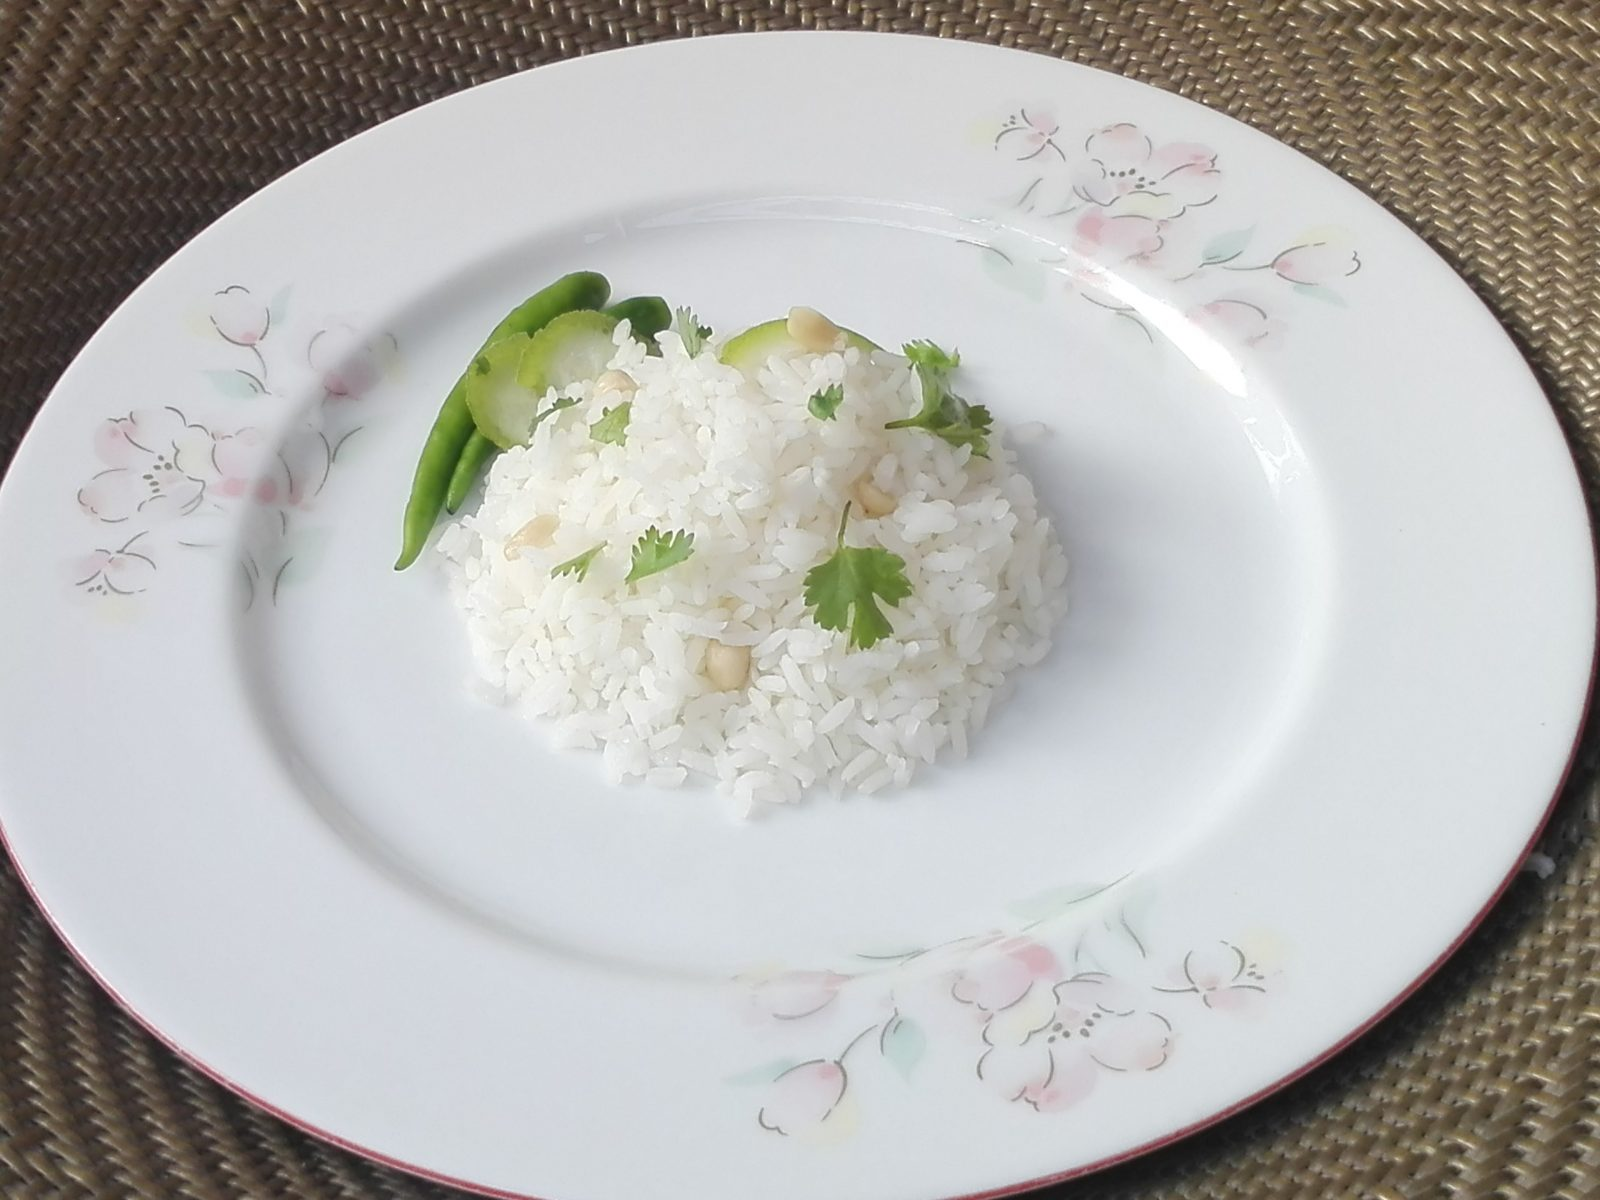 Lemon Rice from Mahbuba's Kitchen